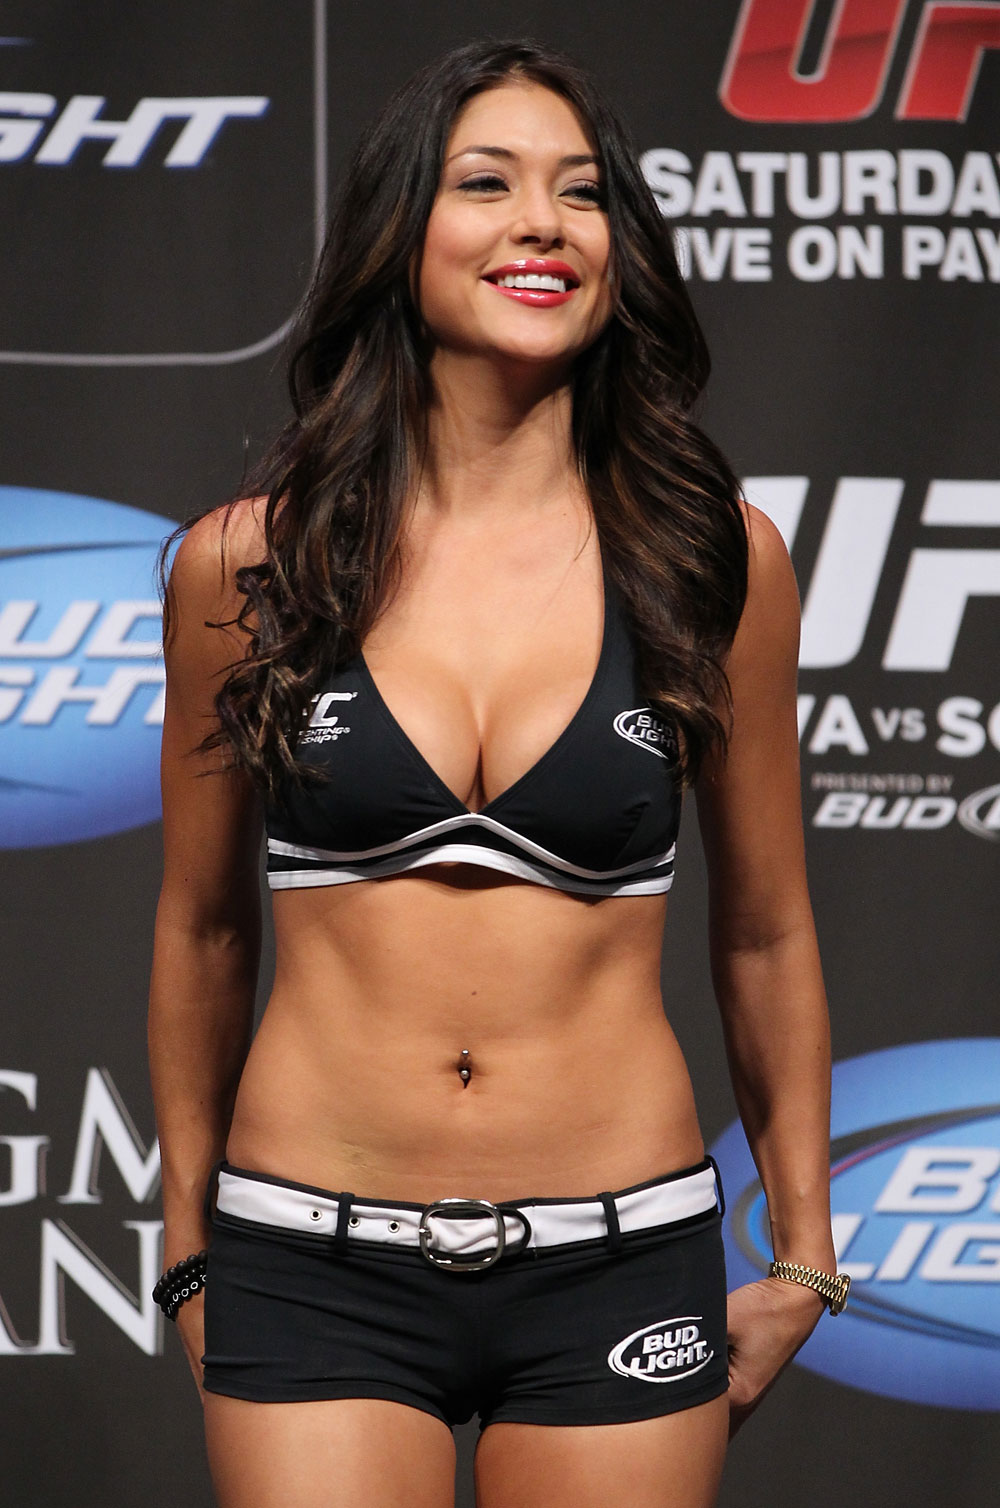 LAS VEGAS, NV - JULY 6:   UFC Octagon Girl Arianny Celeste stands on stage during the UFC 148 Weigh In at the Mandalay Bay Events Center on July 6, 2012 in Las Vegas, Nevada.  (Photo by Josh Hedges/Zuffa LLC/Zuffa LLC via Getty Images)